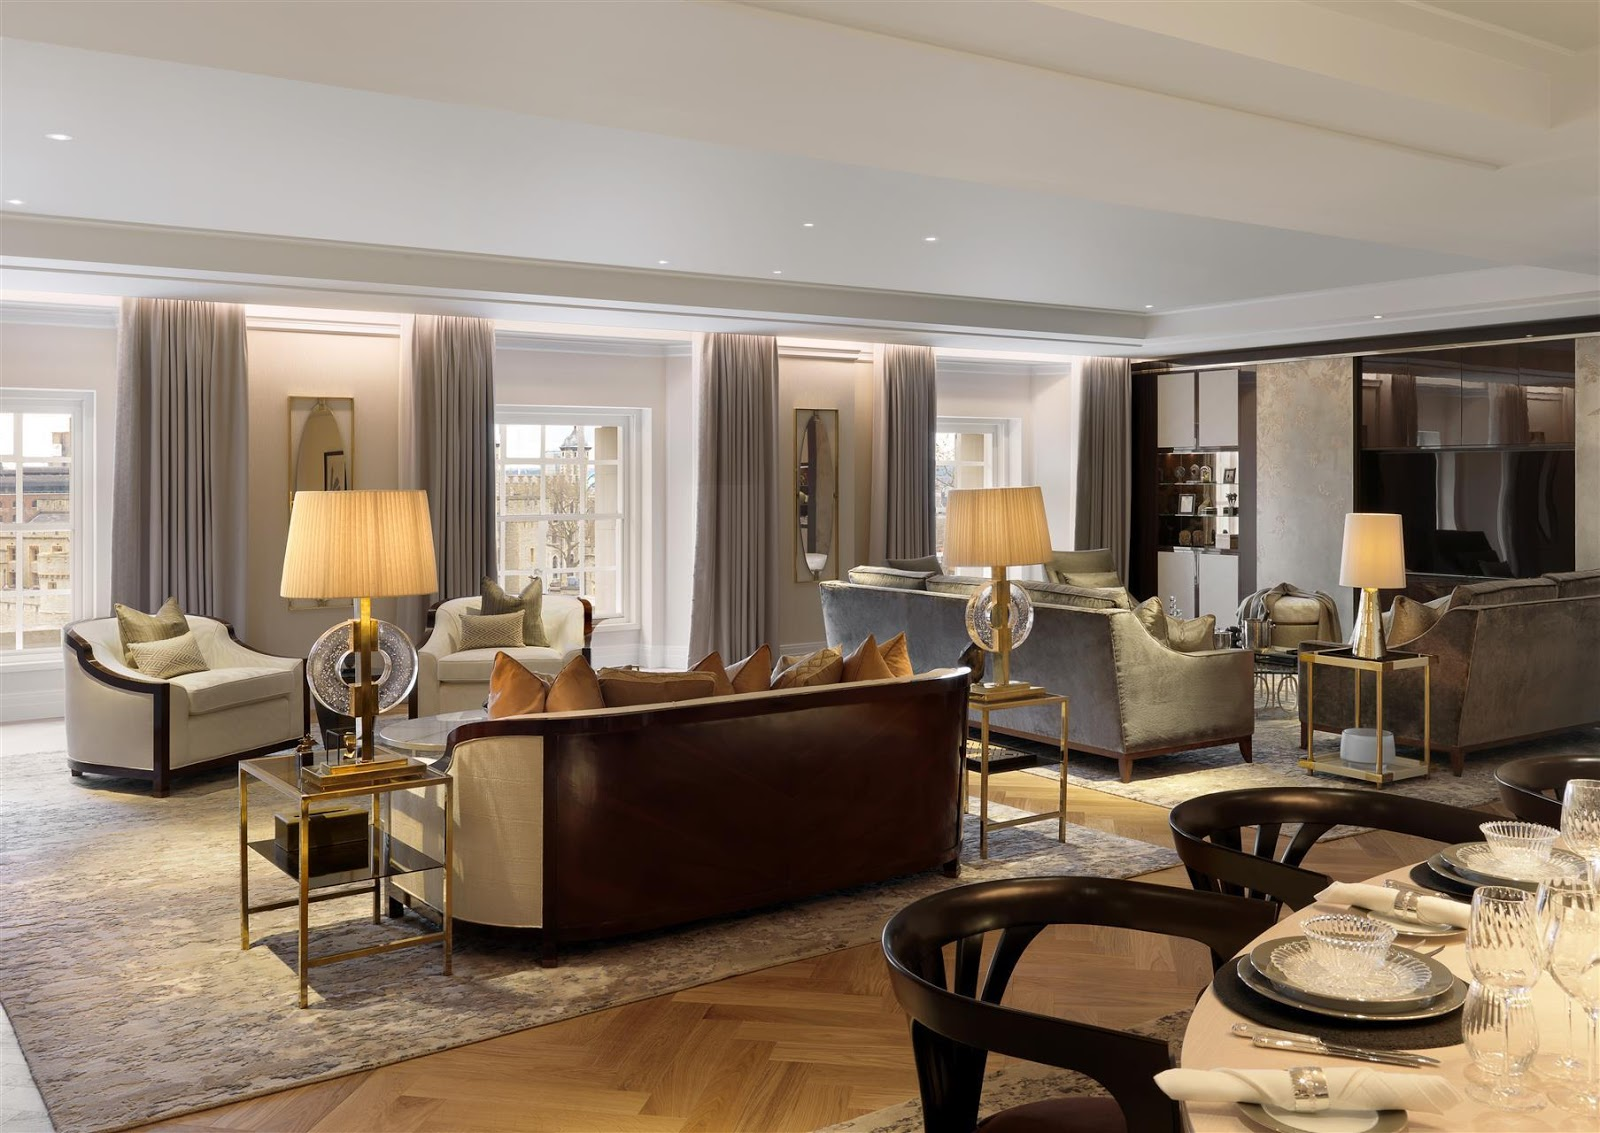 Lxury interior Four Seasons London Ten Trinity Square